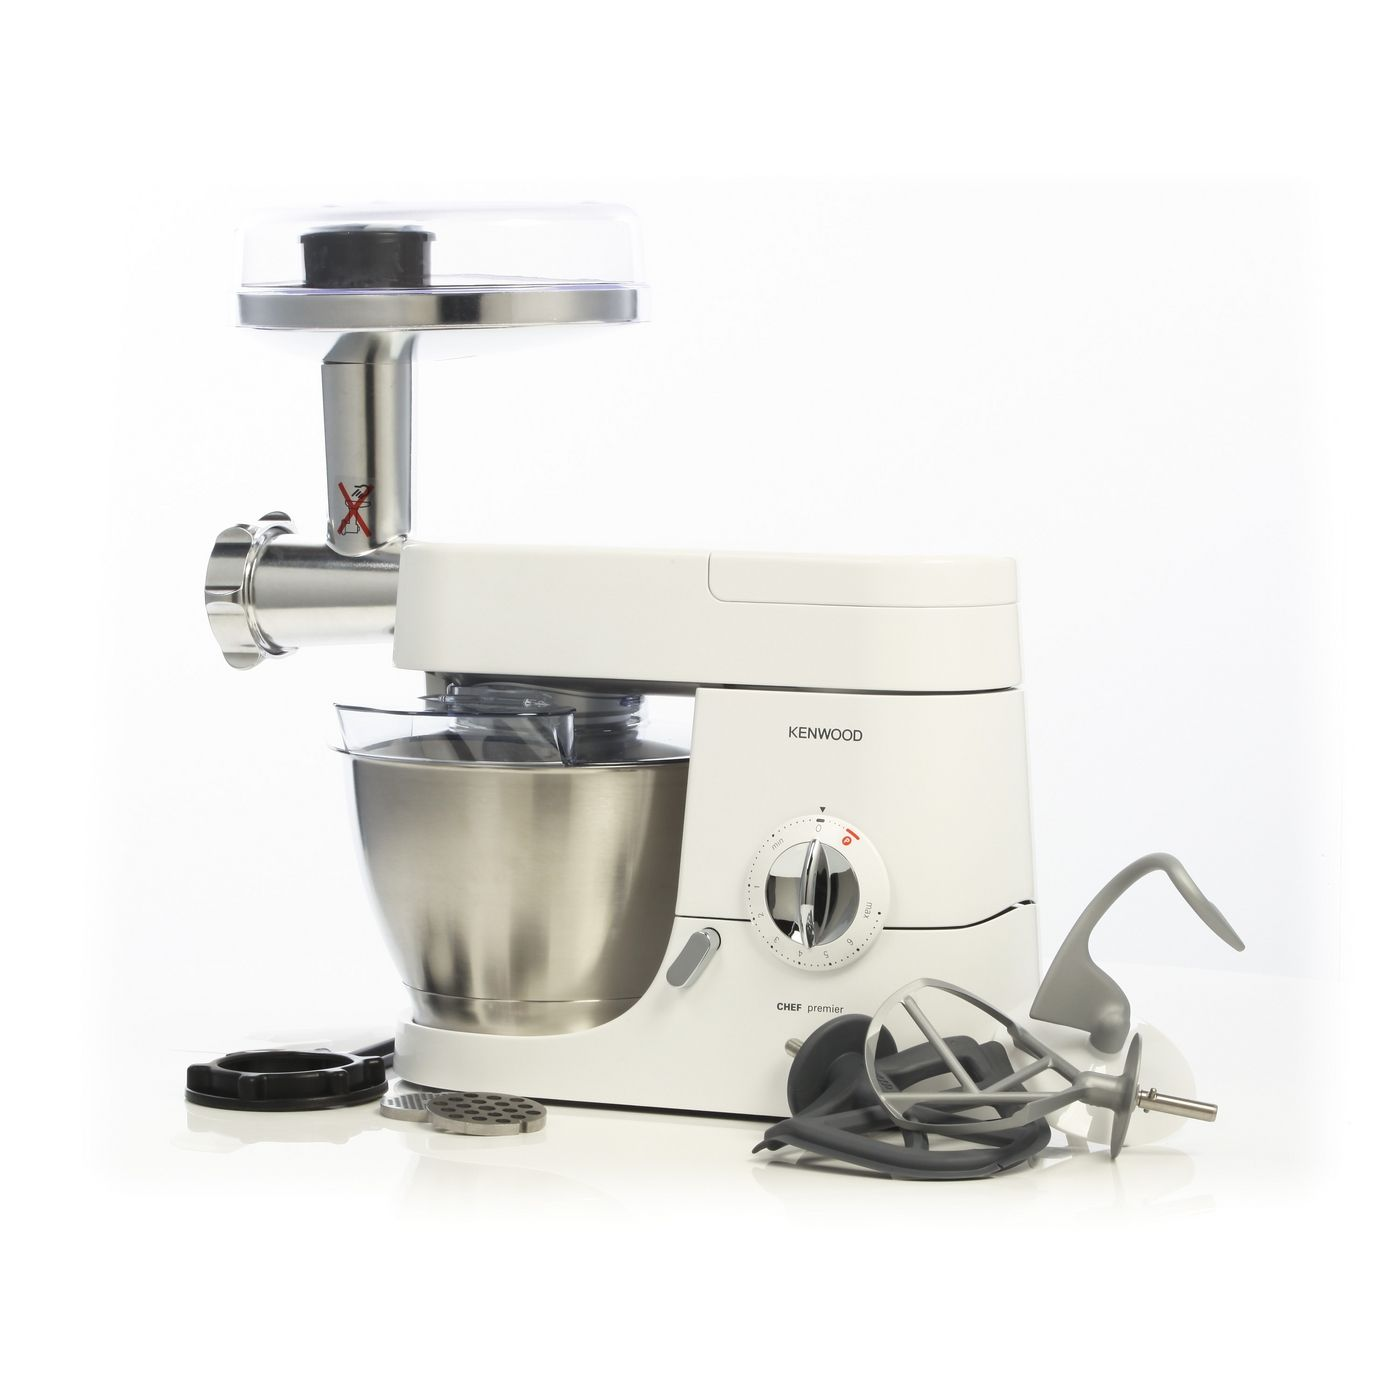 Uncategorized Good Guys Kitchen Appliances kenwood kmc510 premier chef 1000w food mixer at the good guys guys